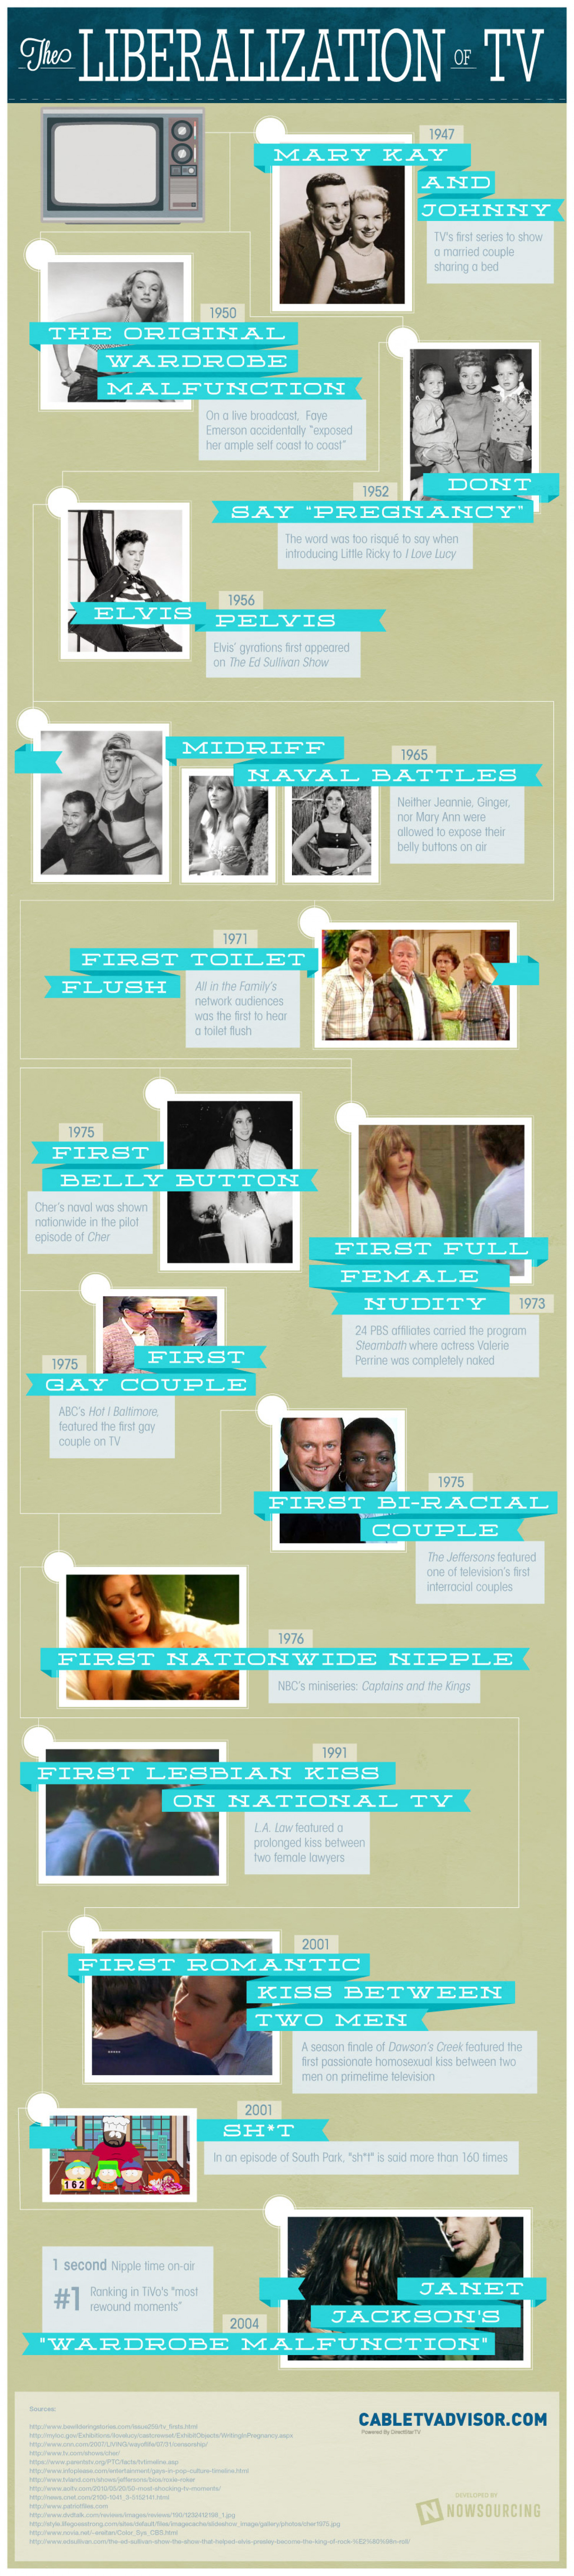 The Liberalization of TV Infographic